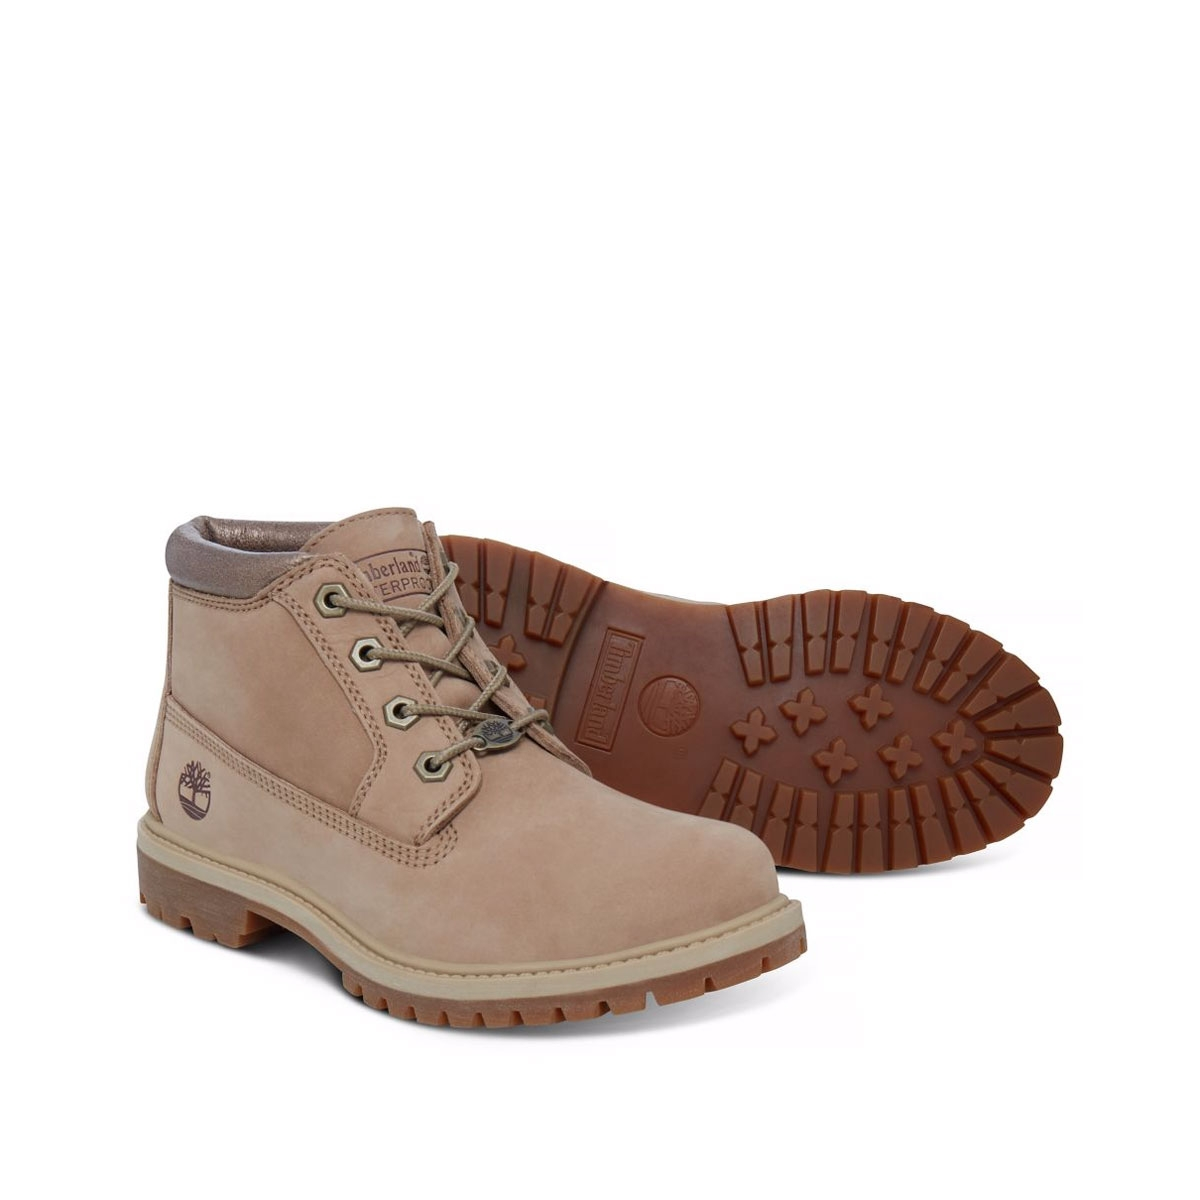 Image of Timberland Nellie Chukka Double WP Boots (Women's) - Natural  Nubuck ...